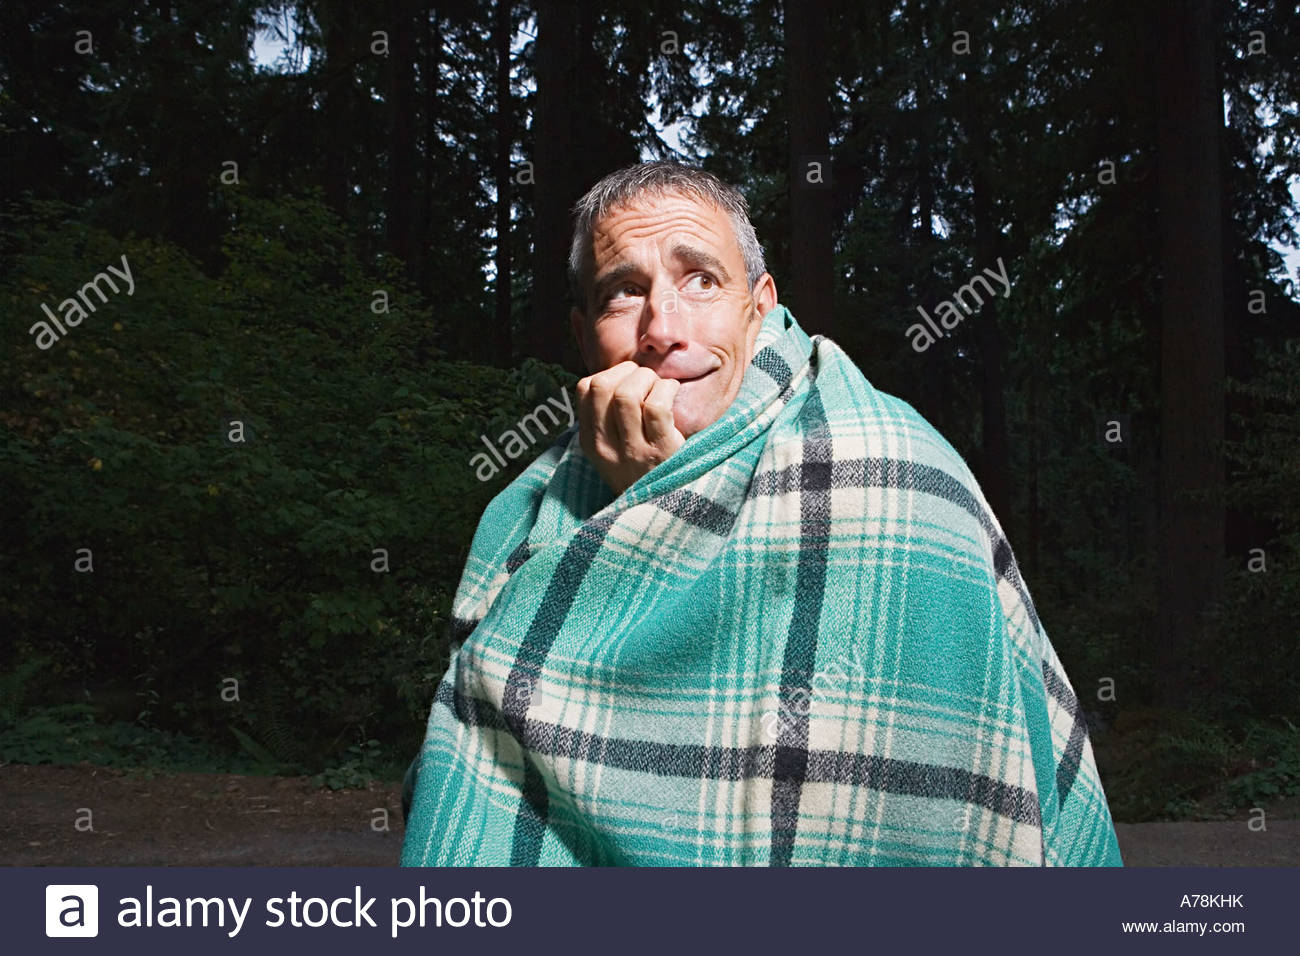 Scared man in a forest - Stock Image